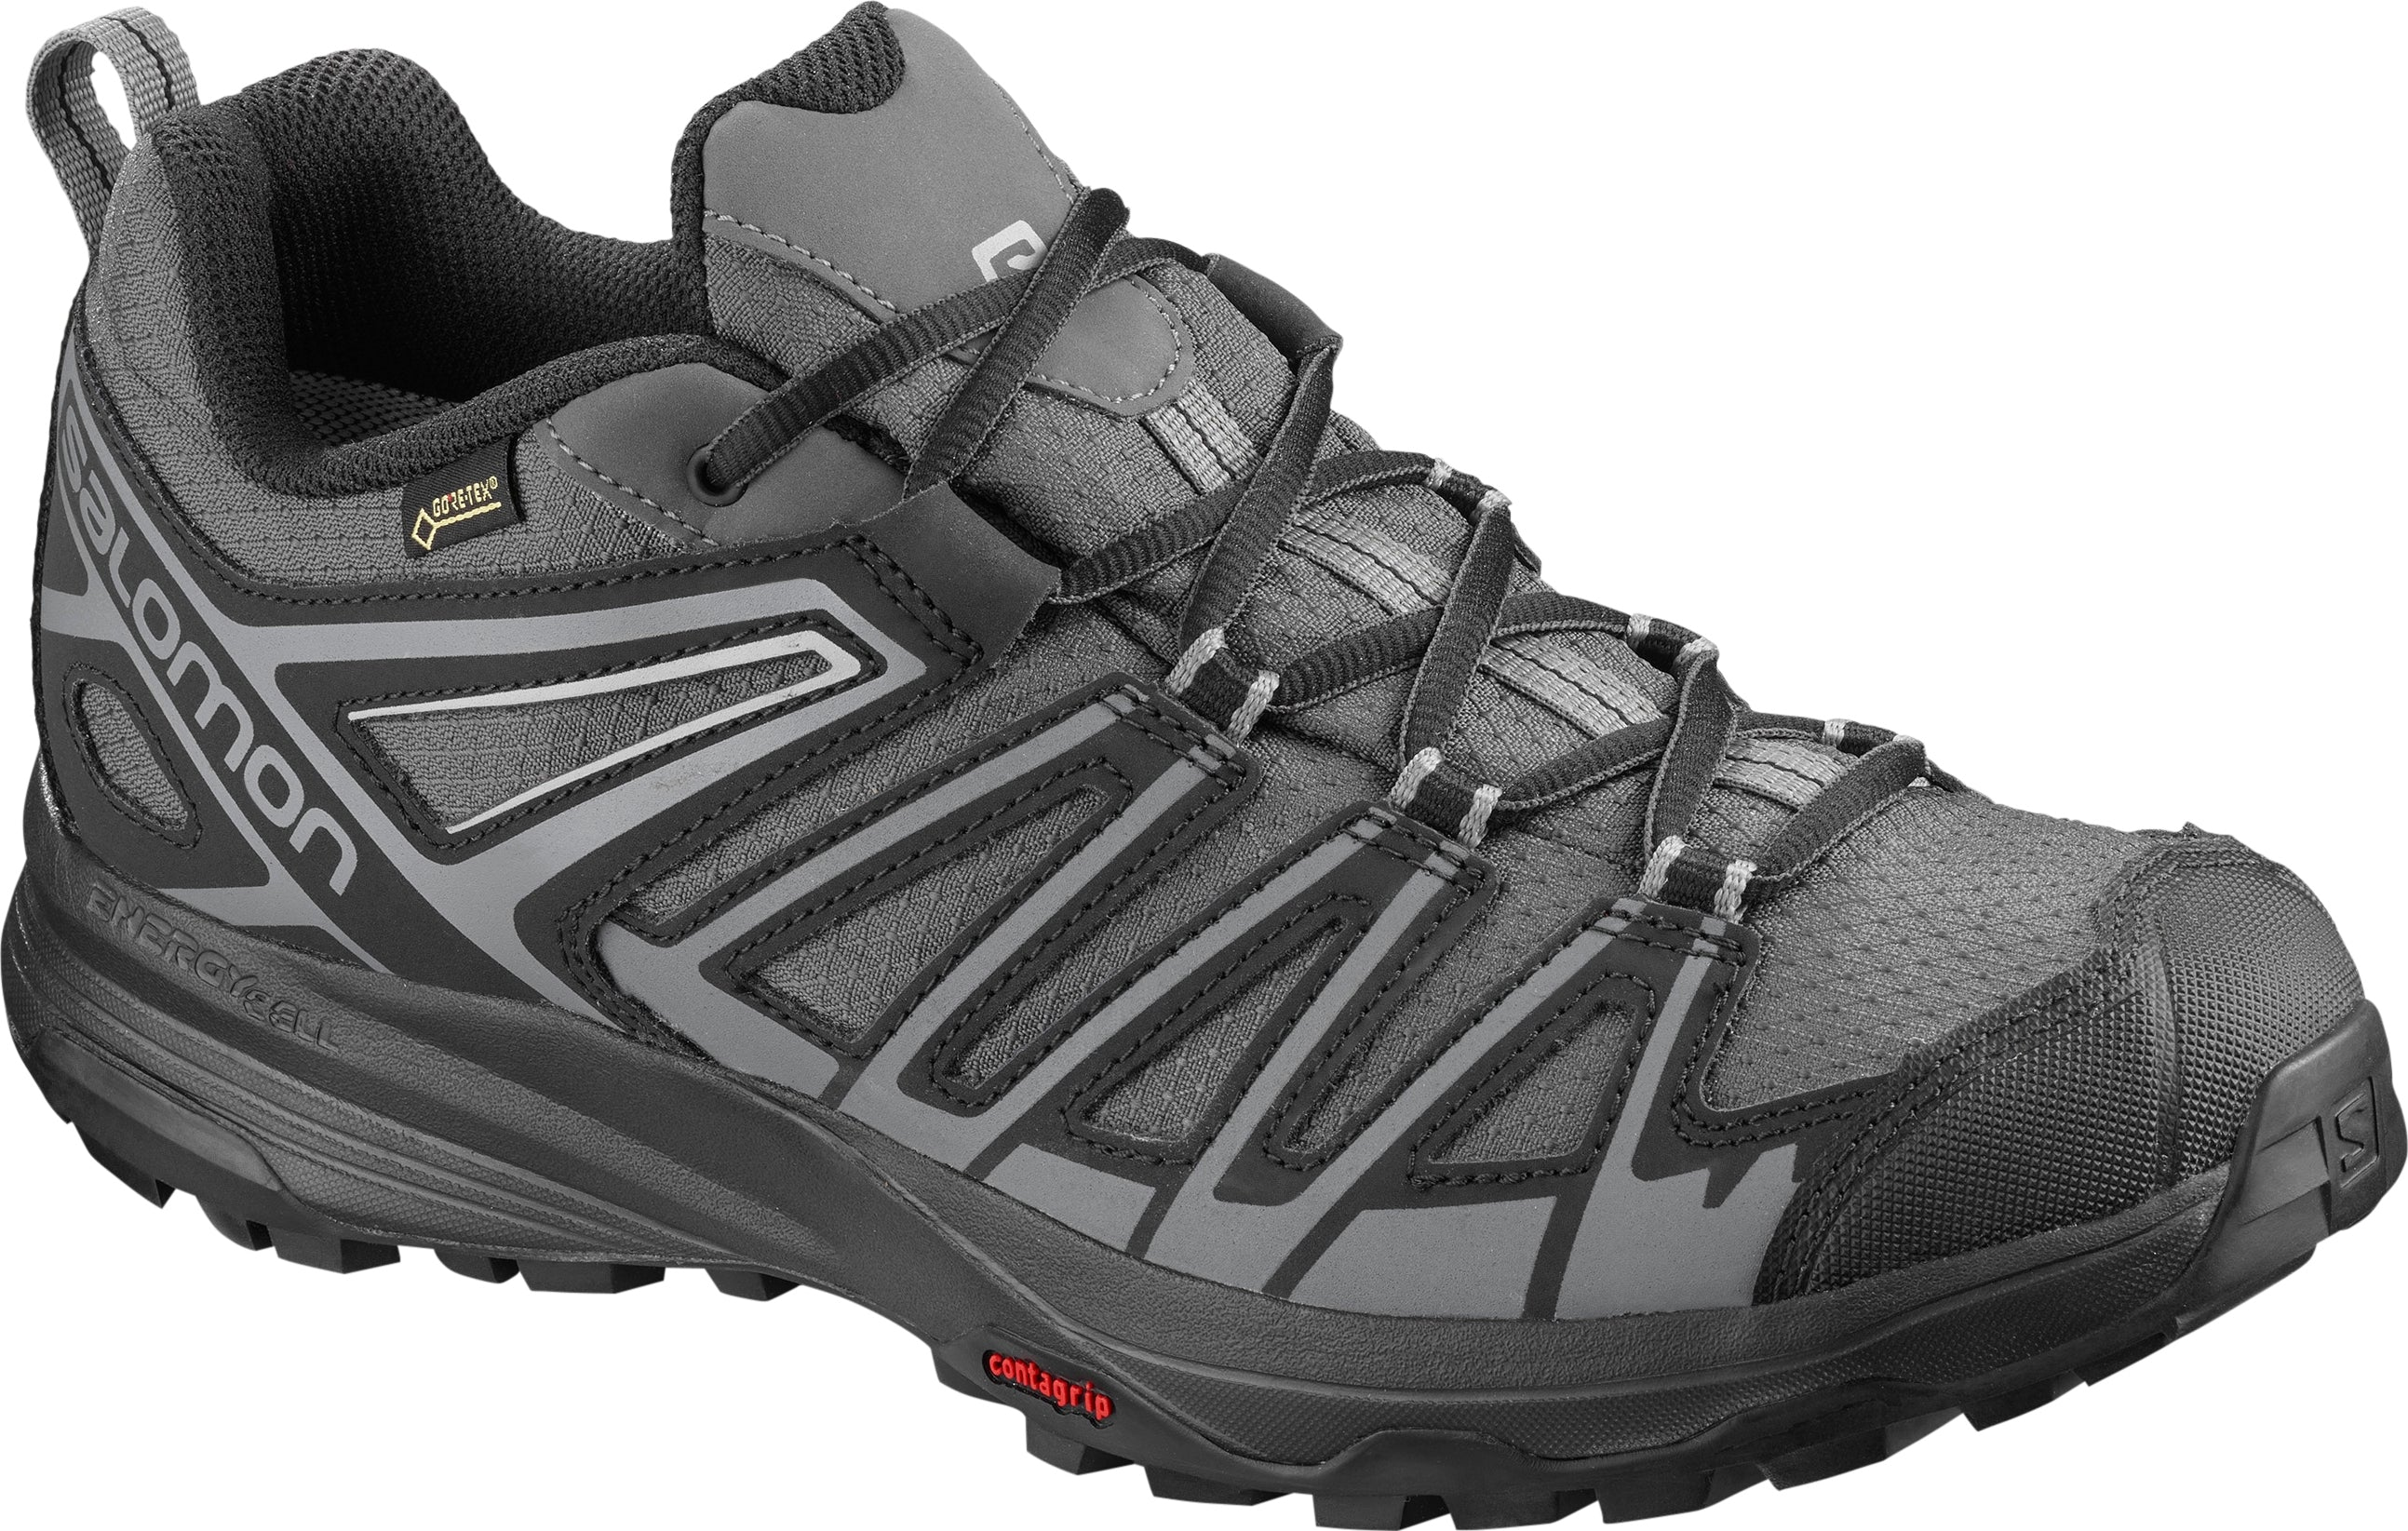 'Salomon' Men's X Crest GTX WP Hiker - Magnet / Black / Quiet Shade